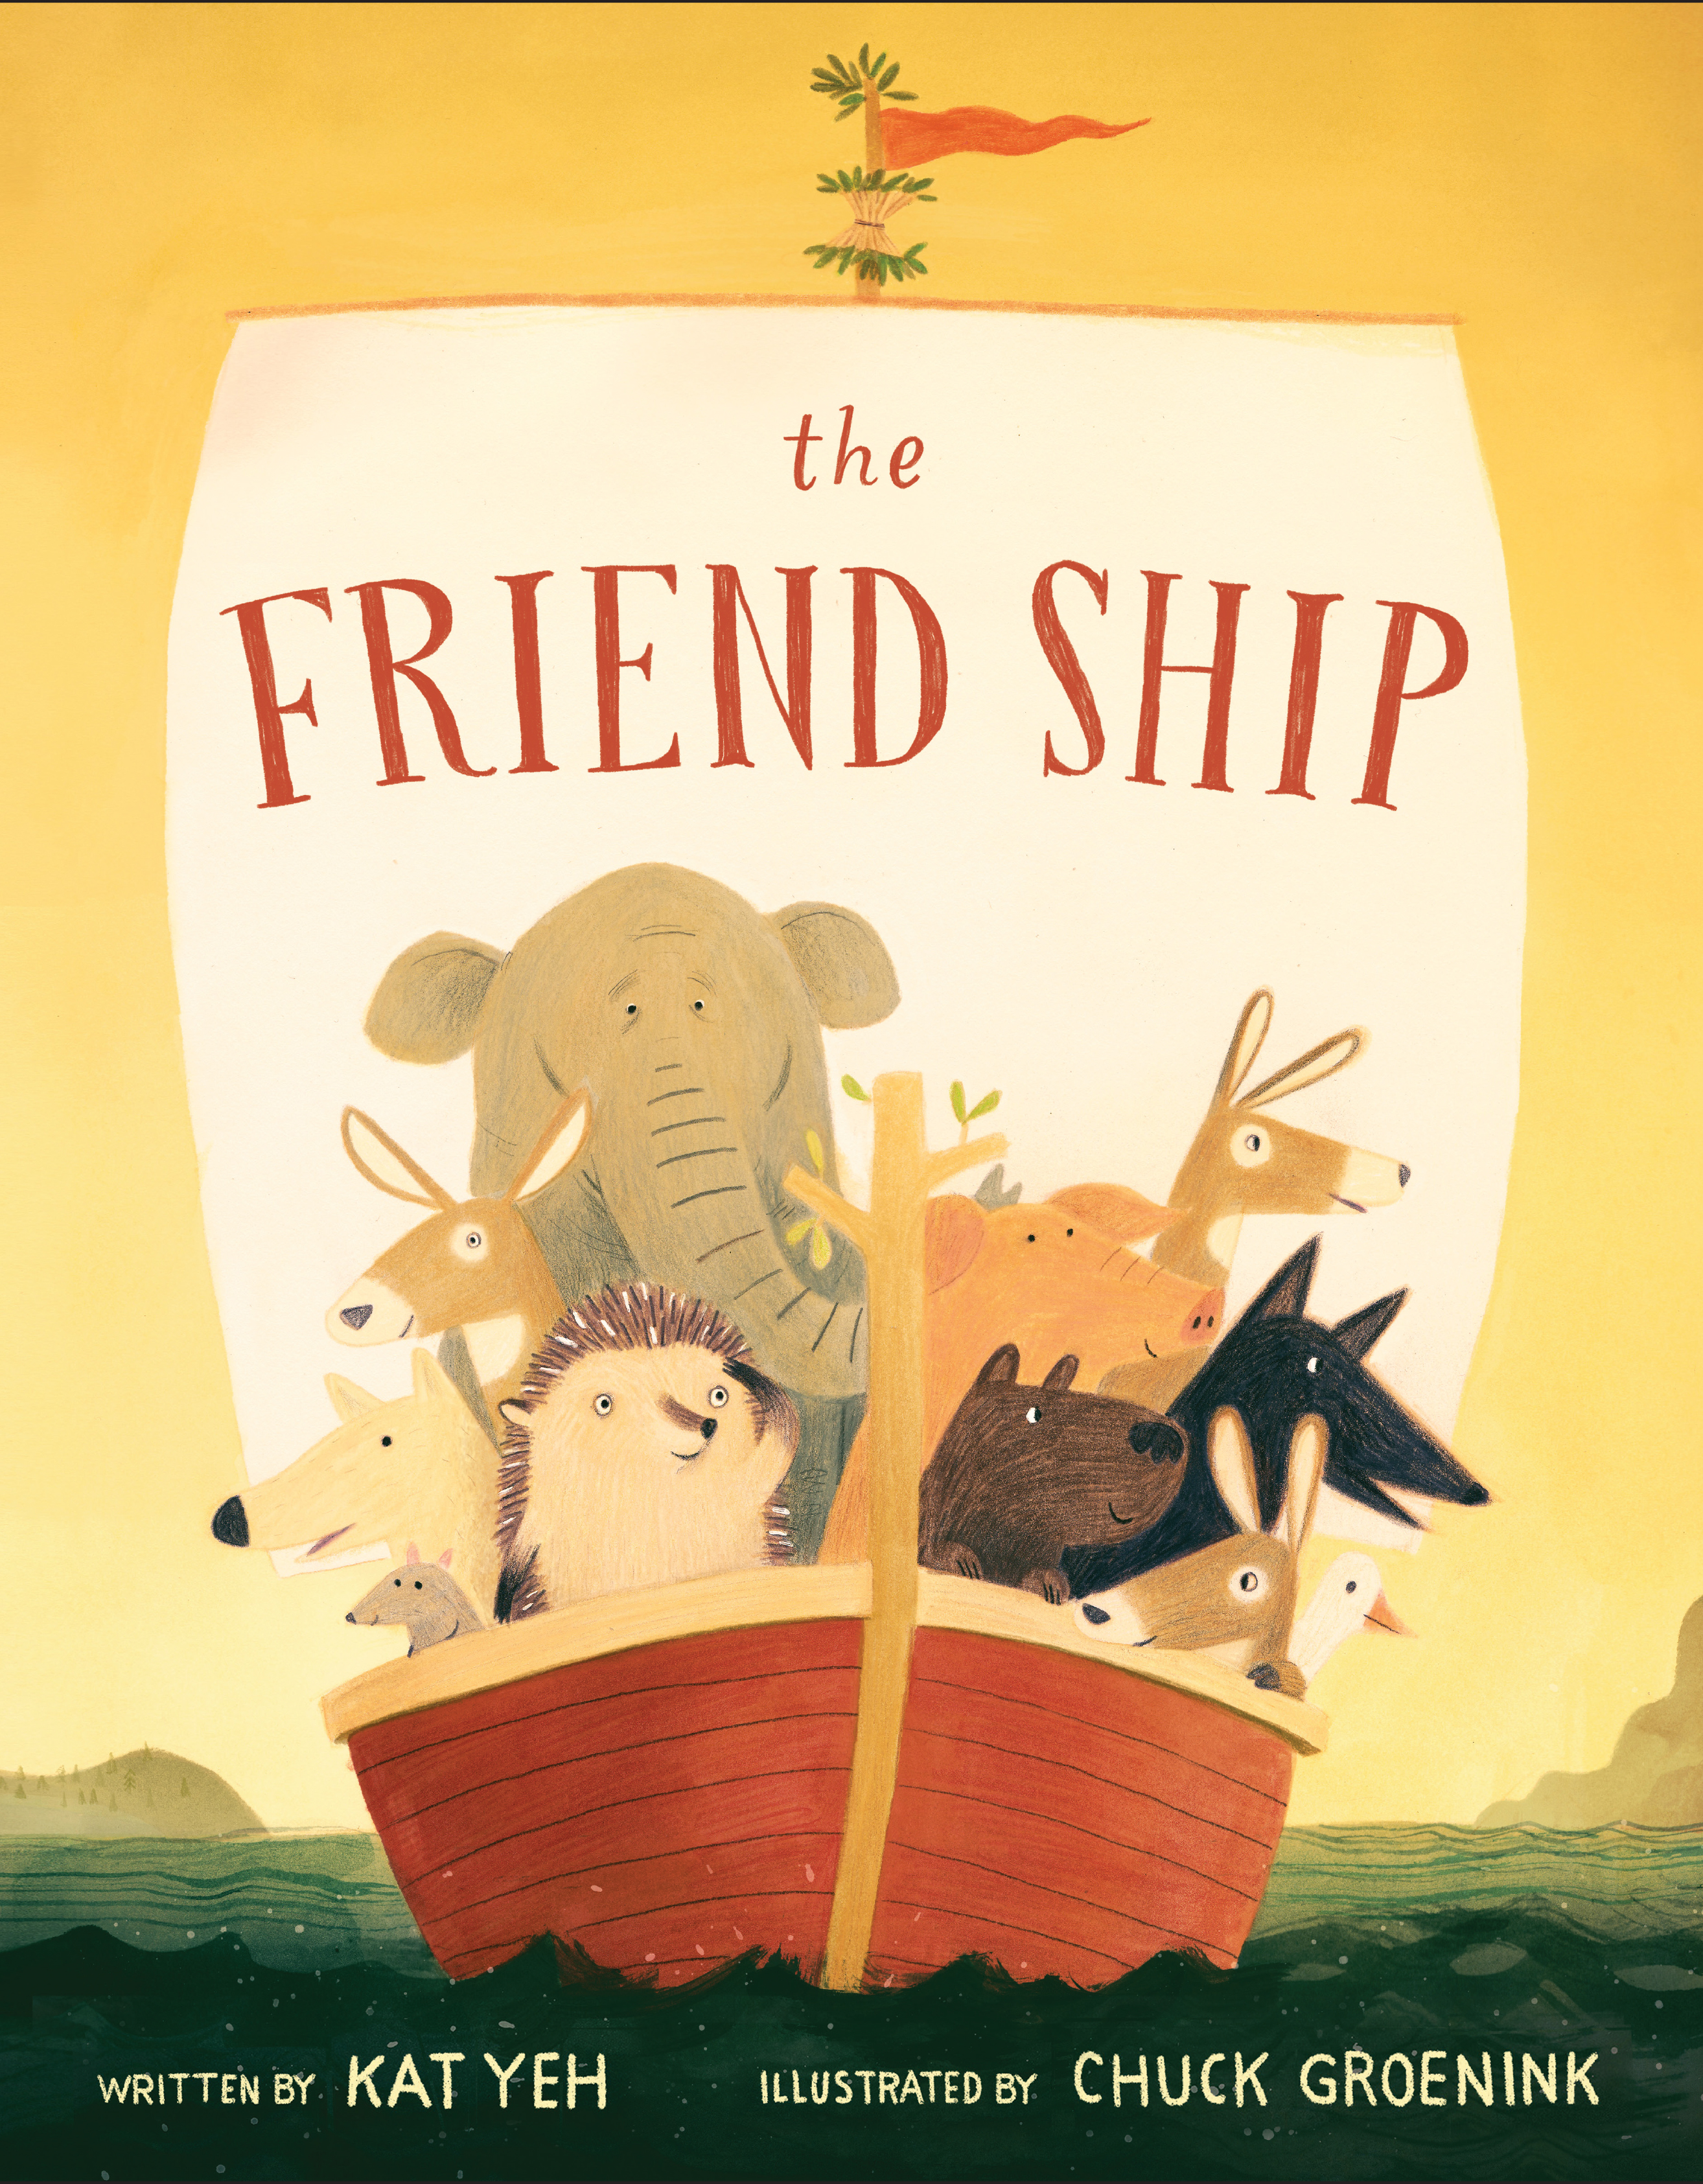 Sunday Story Time with Kat Yeh (Author of The Friend Ship)